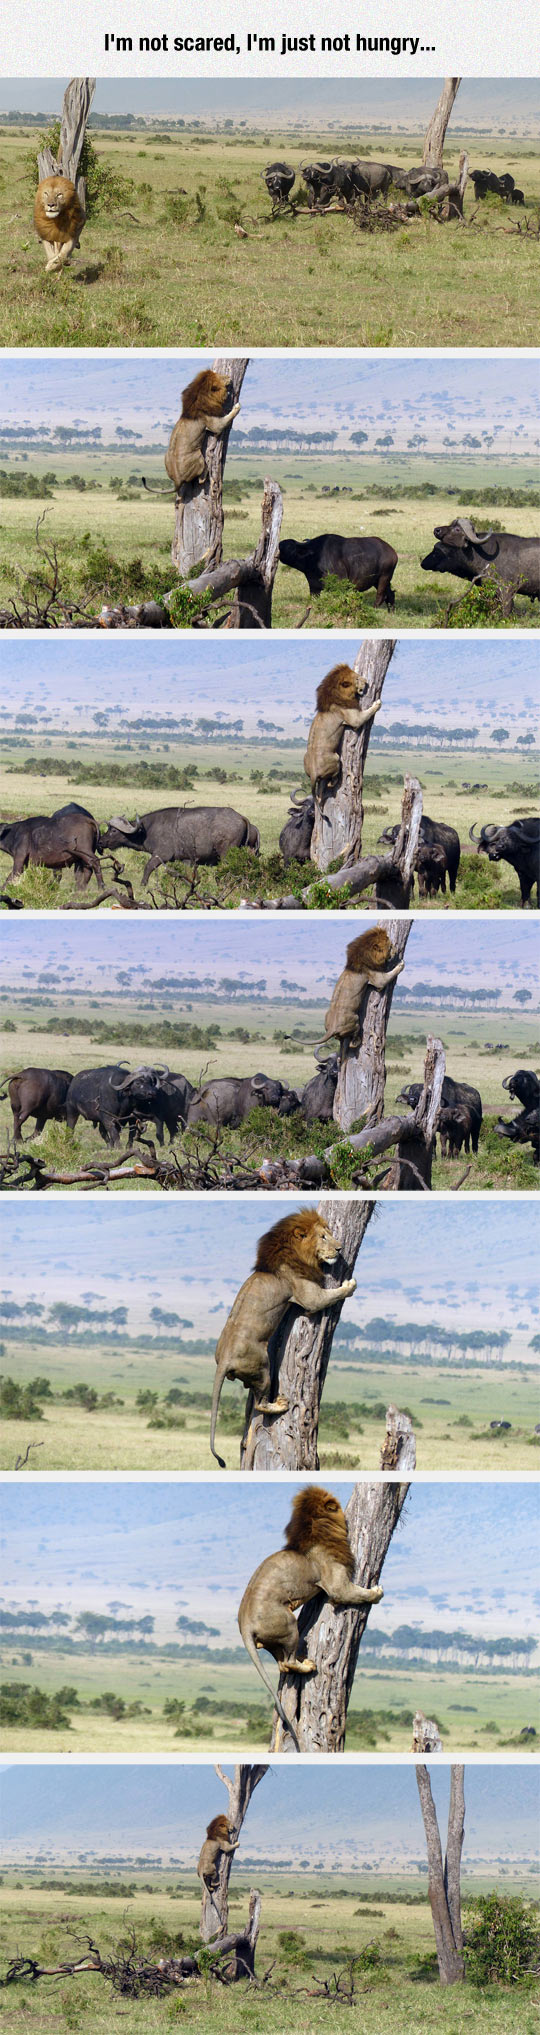 Lion Gets In Trouble